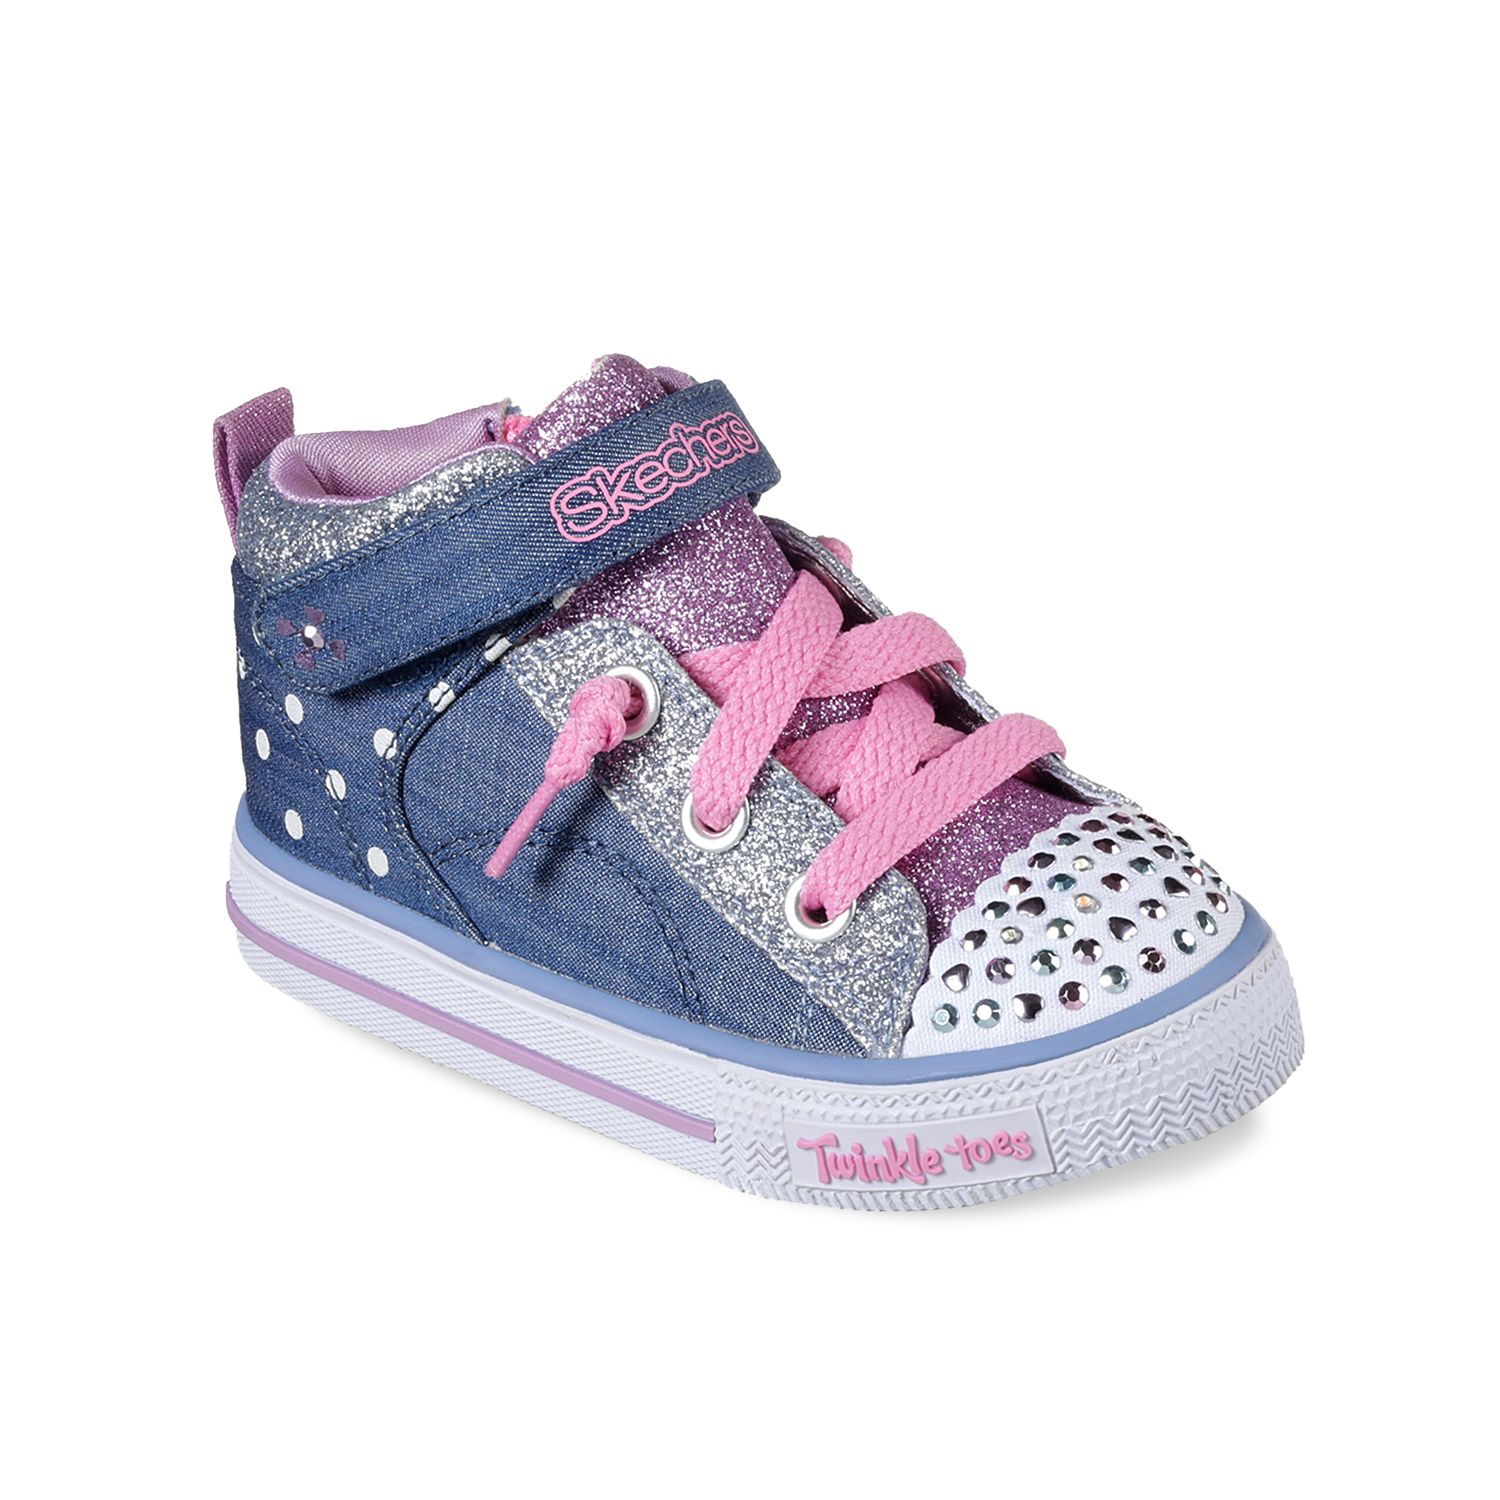 Skechers Twinkle Toes Shuffles Diggity Dot Toddler Girl Light-Up Shoes  sc 1 st  Kohlu0027s & Twinkle Toes Shuffles Diggity Dot Toddler Girl Light-Up Shoes azcodes.com